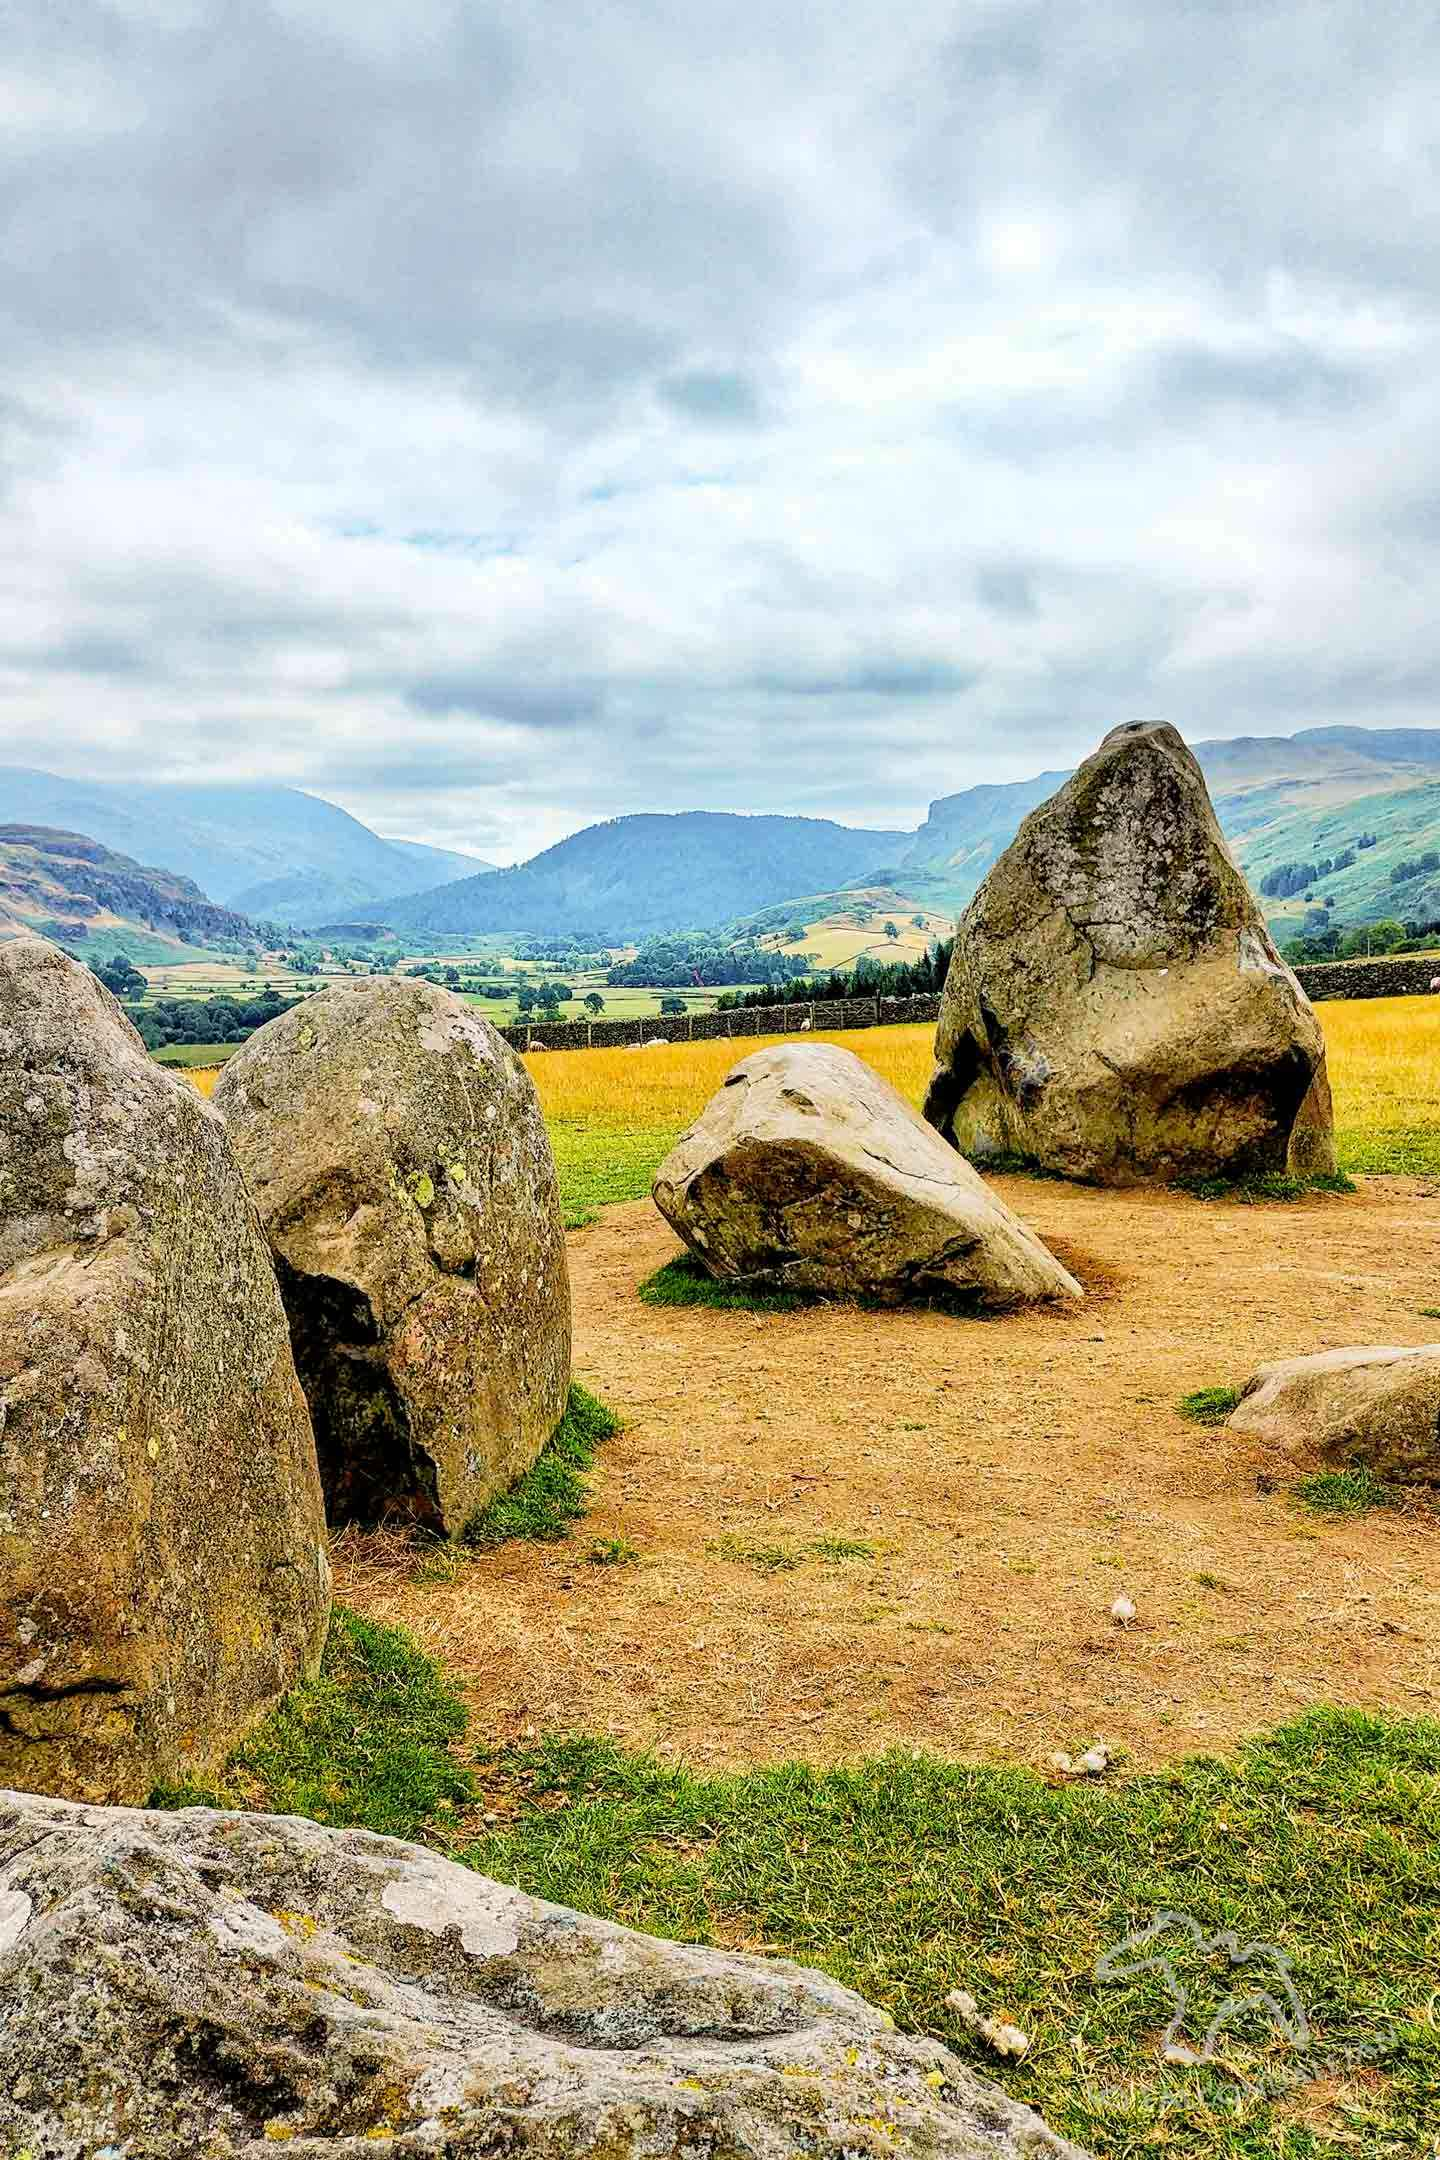 I only had my phone and 15 minutes, so how did I get some nice photos of Castlerigg Stone Circle in the Lake District? Photography tips and visitor info. Taking photos at Castlerigg Stone Circle in the Lake District on Falcondale Life blog. Image description: part of Castlerigg in the Lakes.